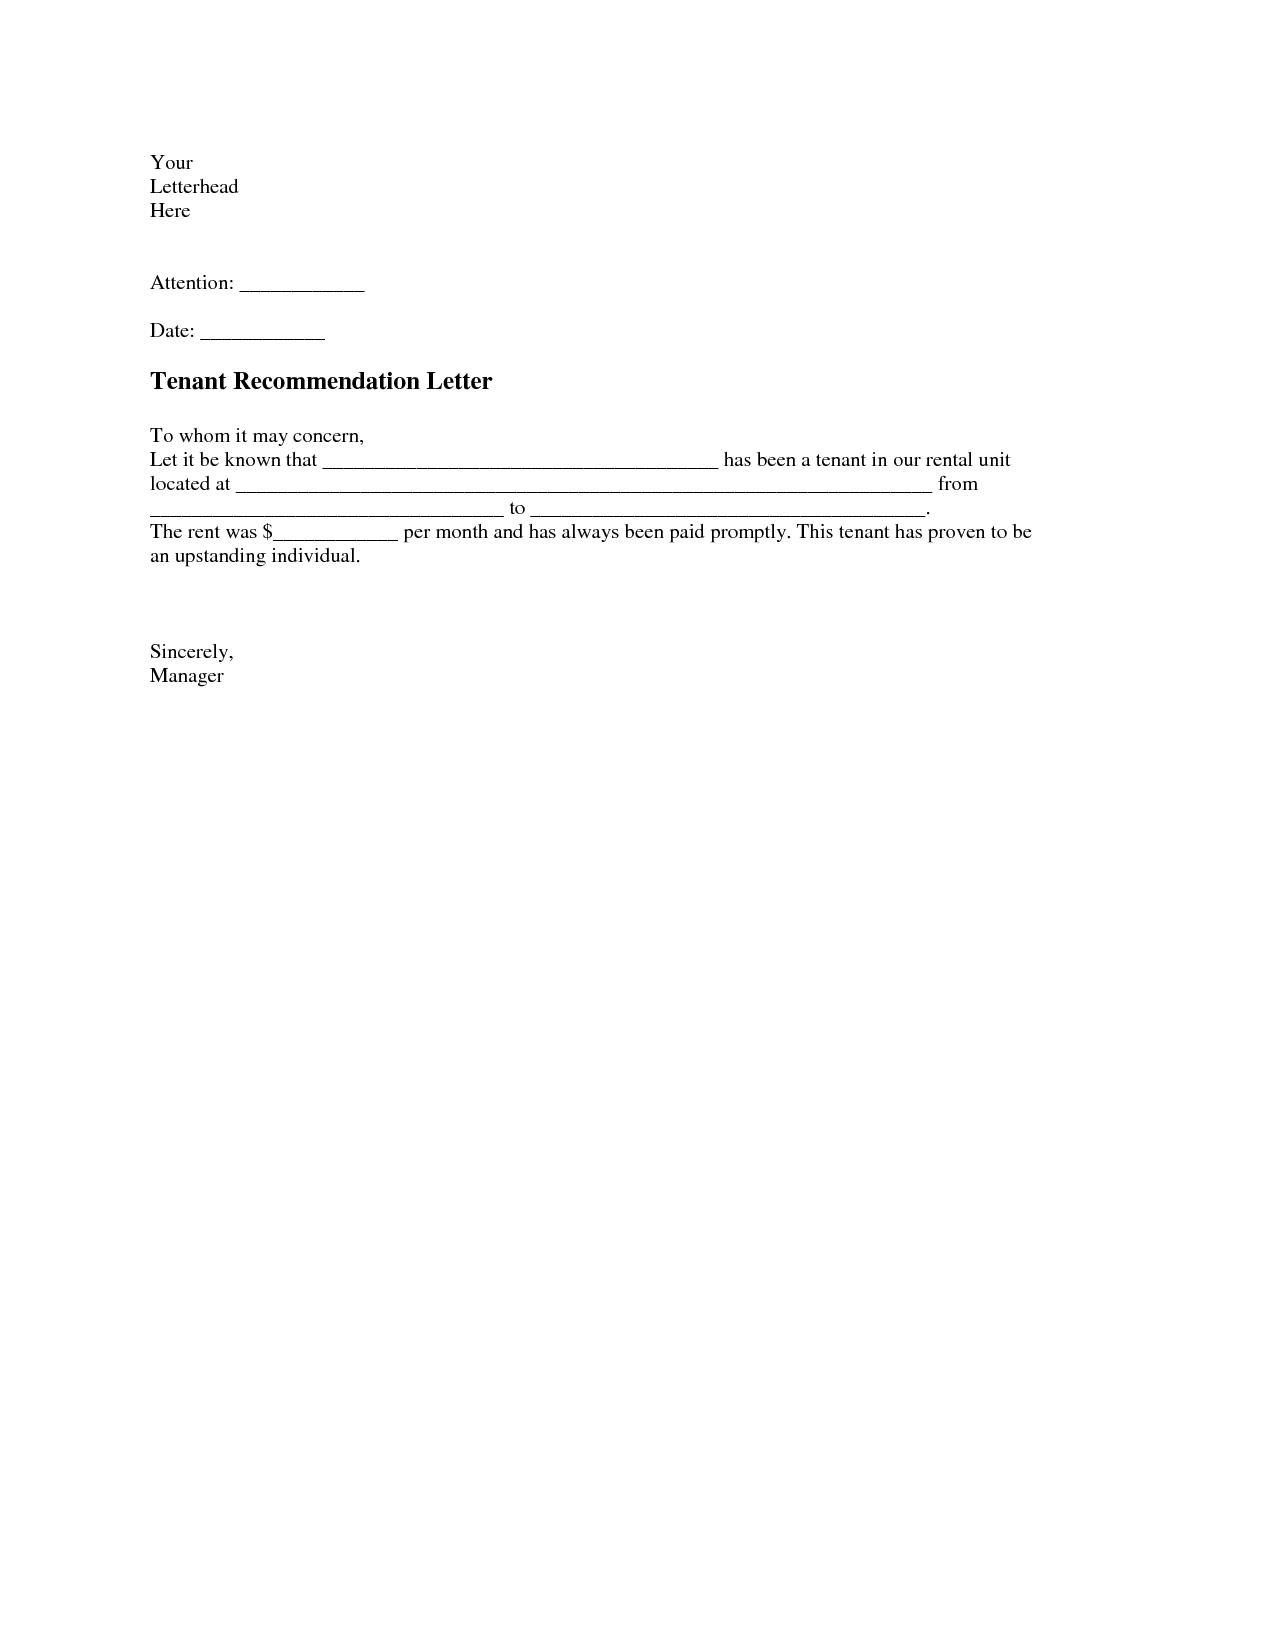 rental reference letter template example-Tenant Re mendation Letter A tenant re mendation letter is usually required by a serious landlord from previous landlords to ensure that the potential 6-g